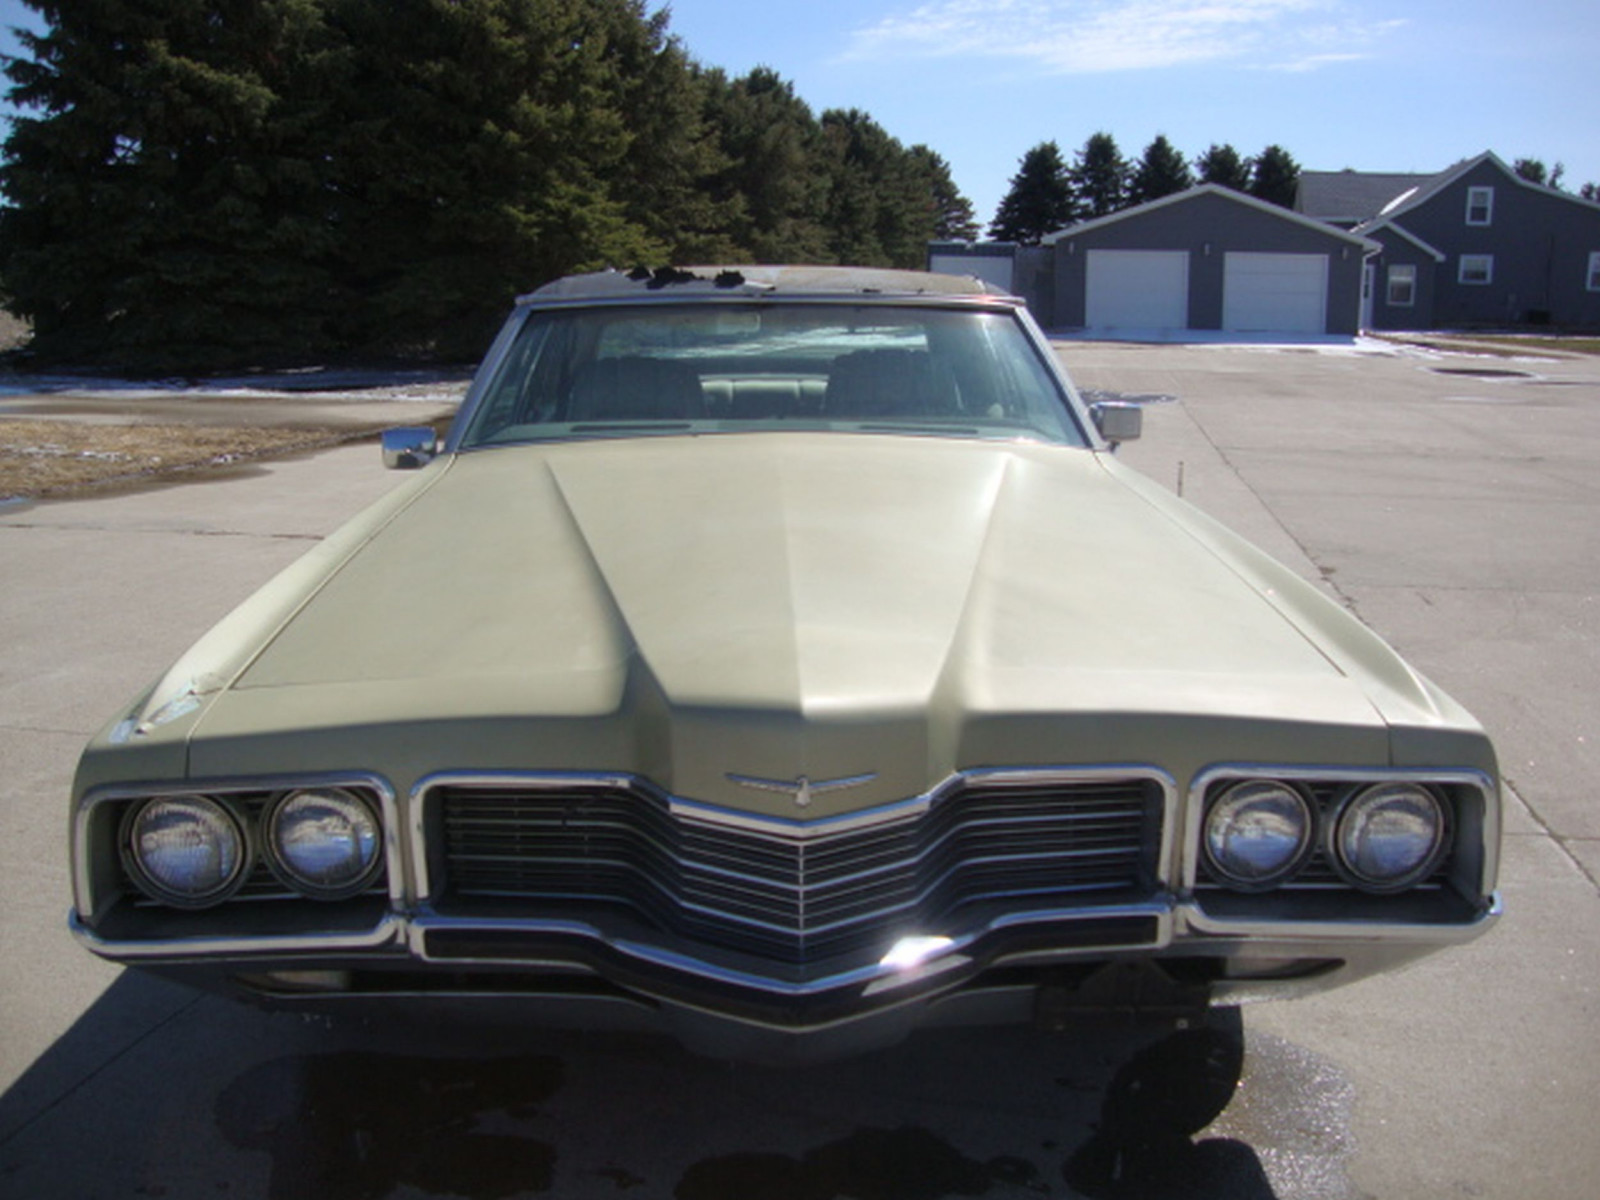 1971 Ford Thunderbird 4dr Sedan - Image 2